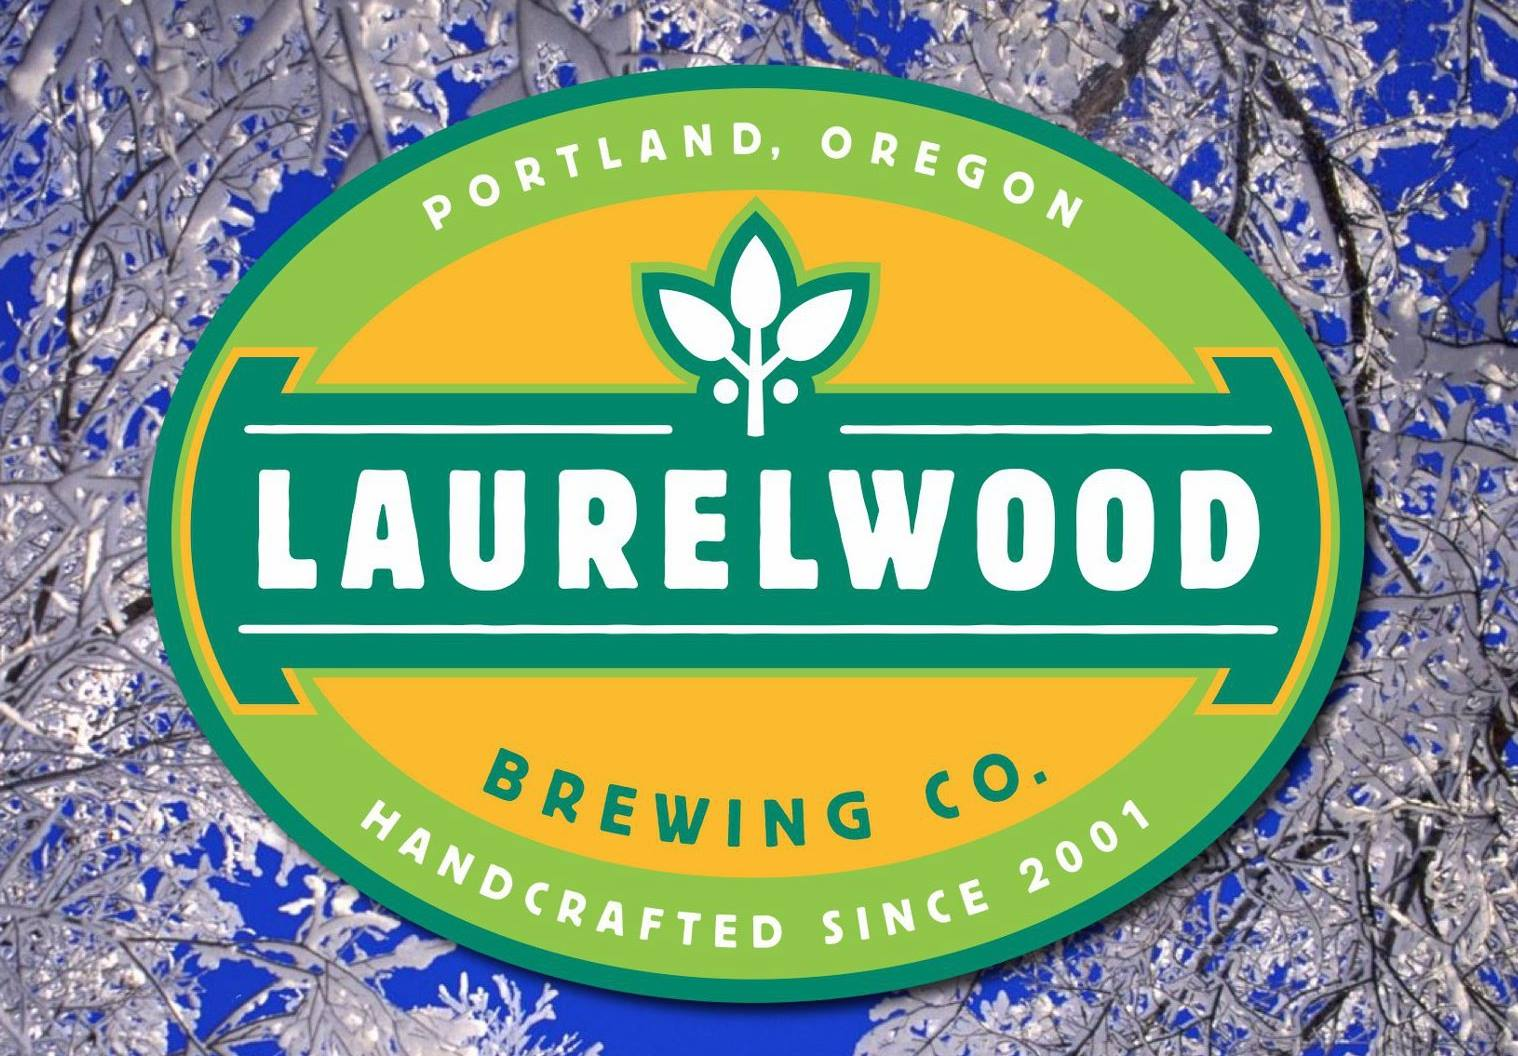 Laurelwood brewing releases organic portland roasting for Laurel wood